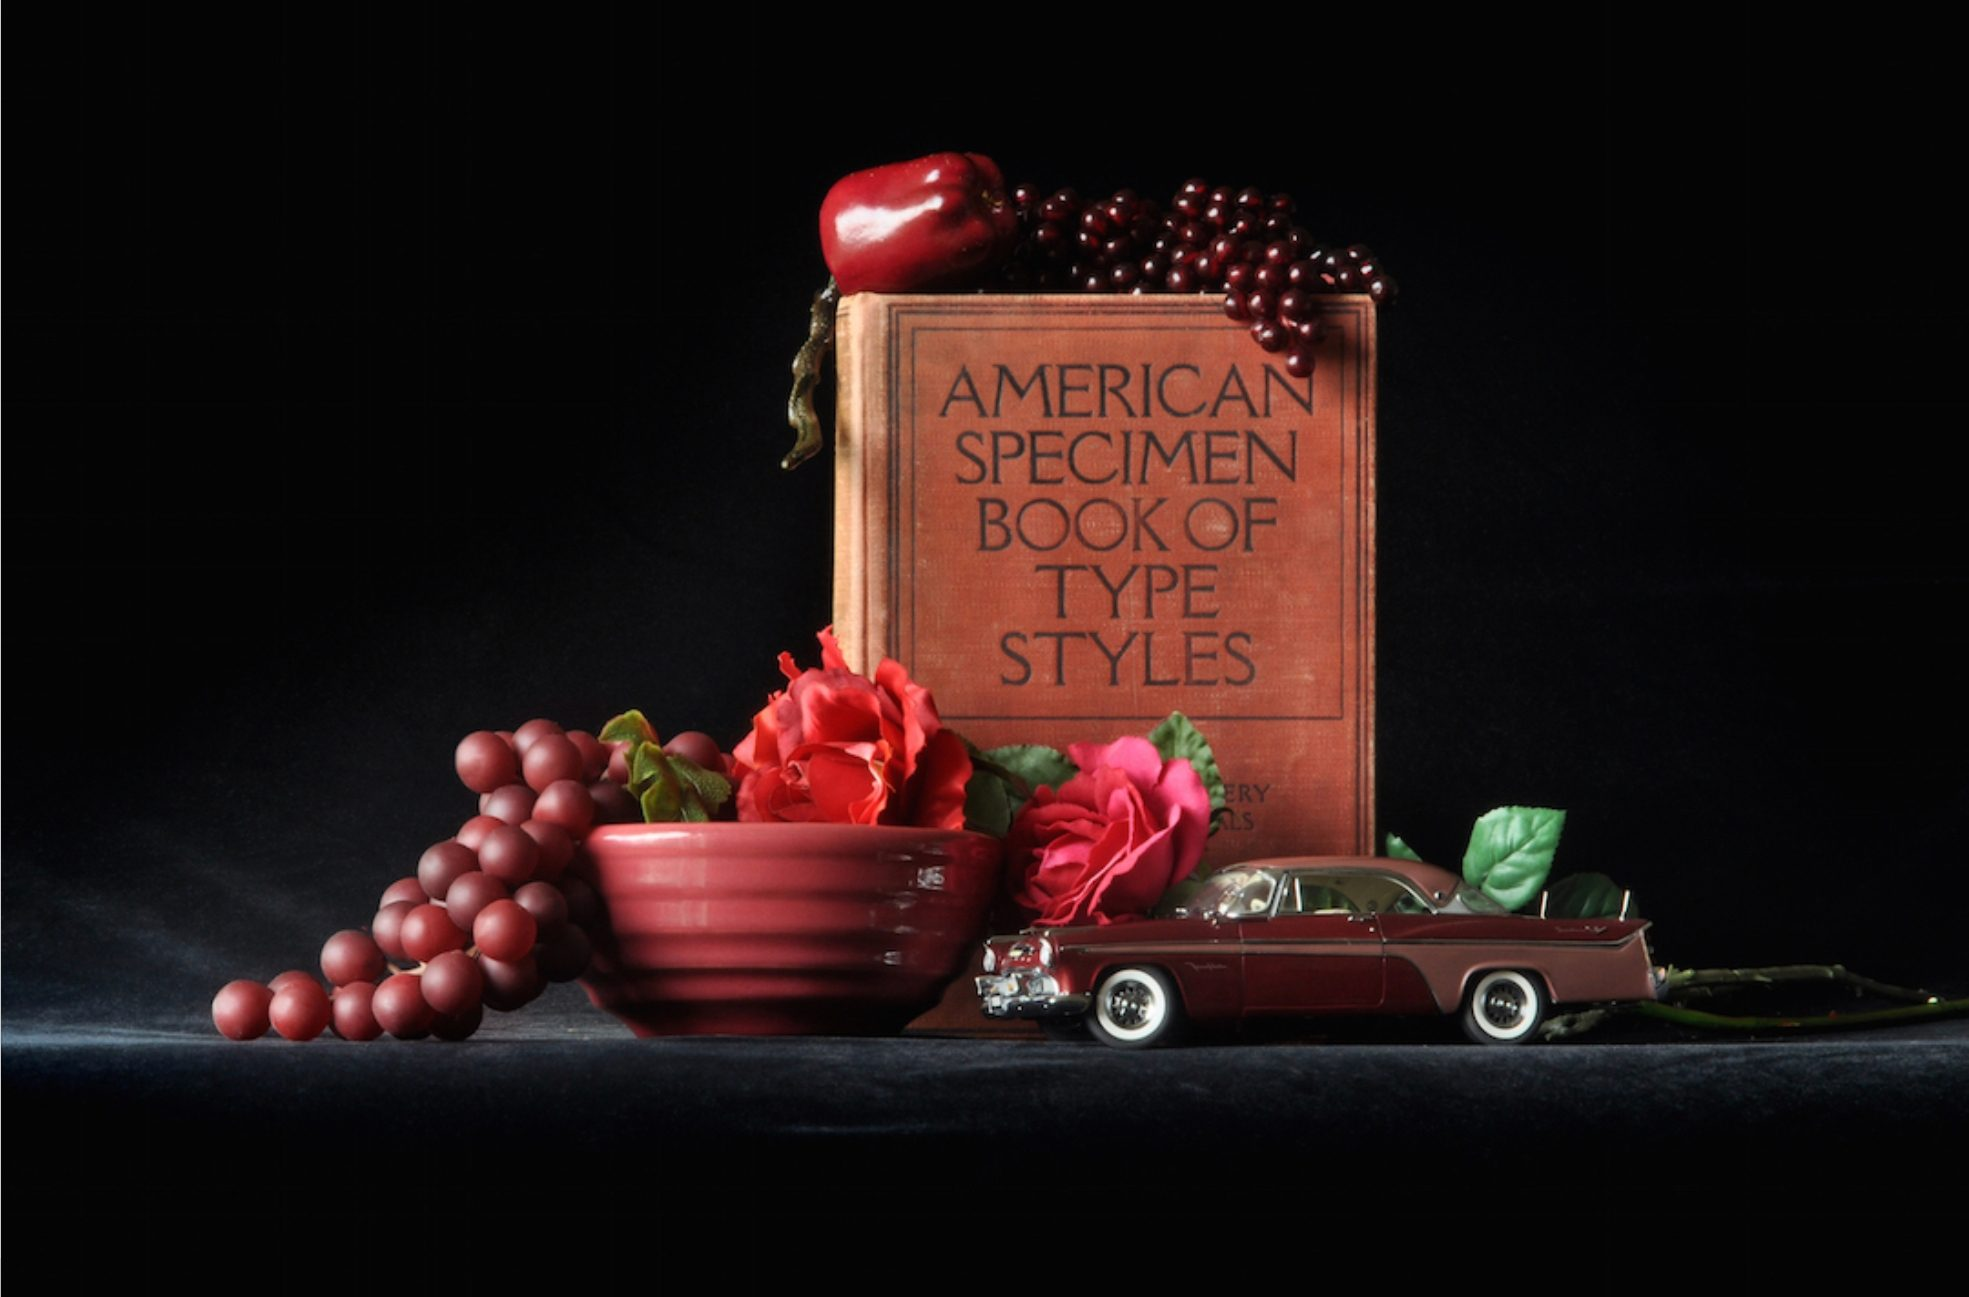 1911 American Specimen Book of Type Styles with 1956 DeSoto